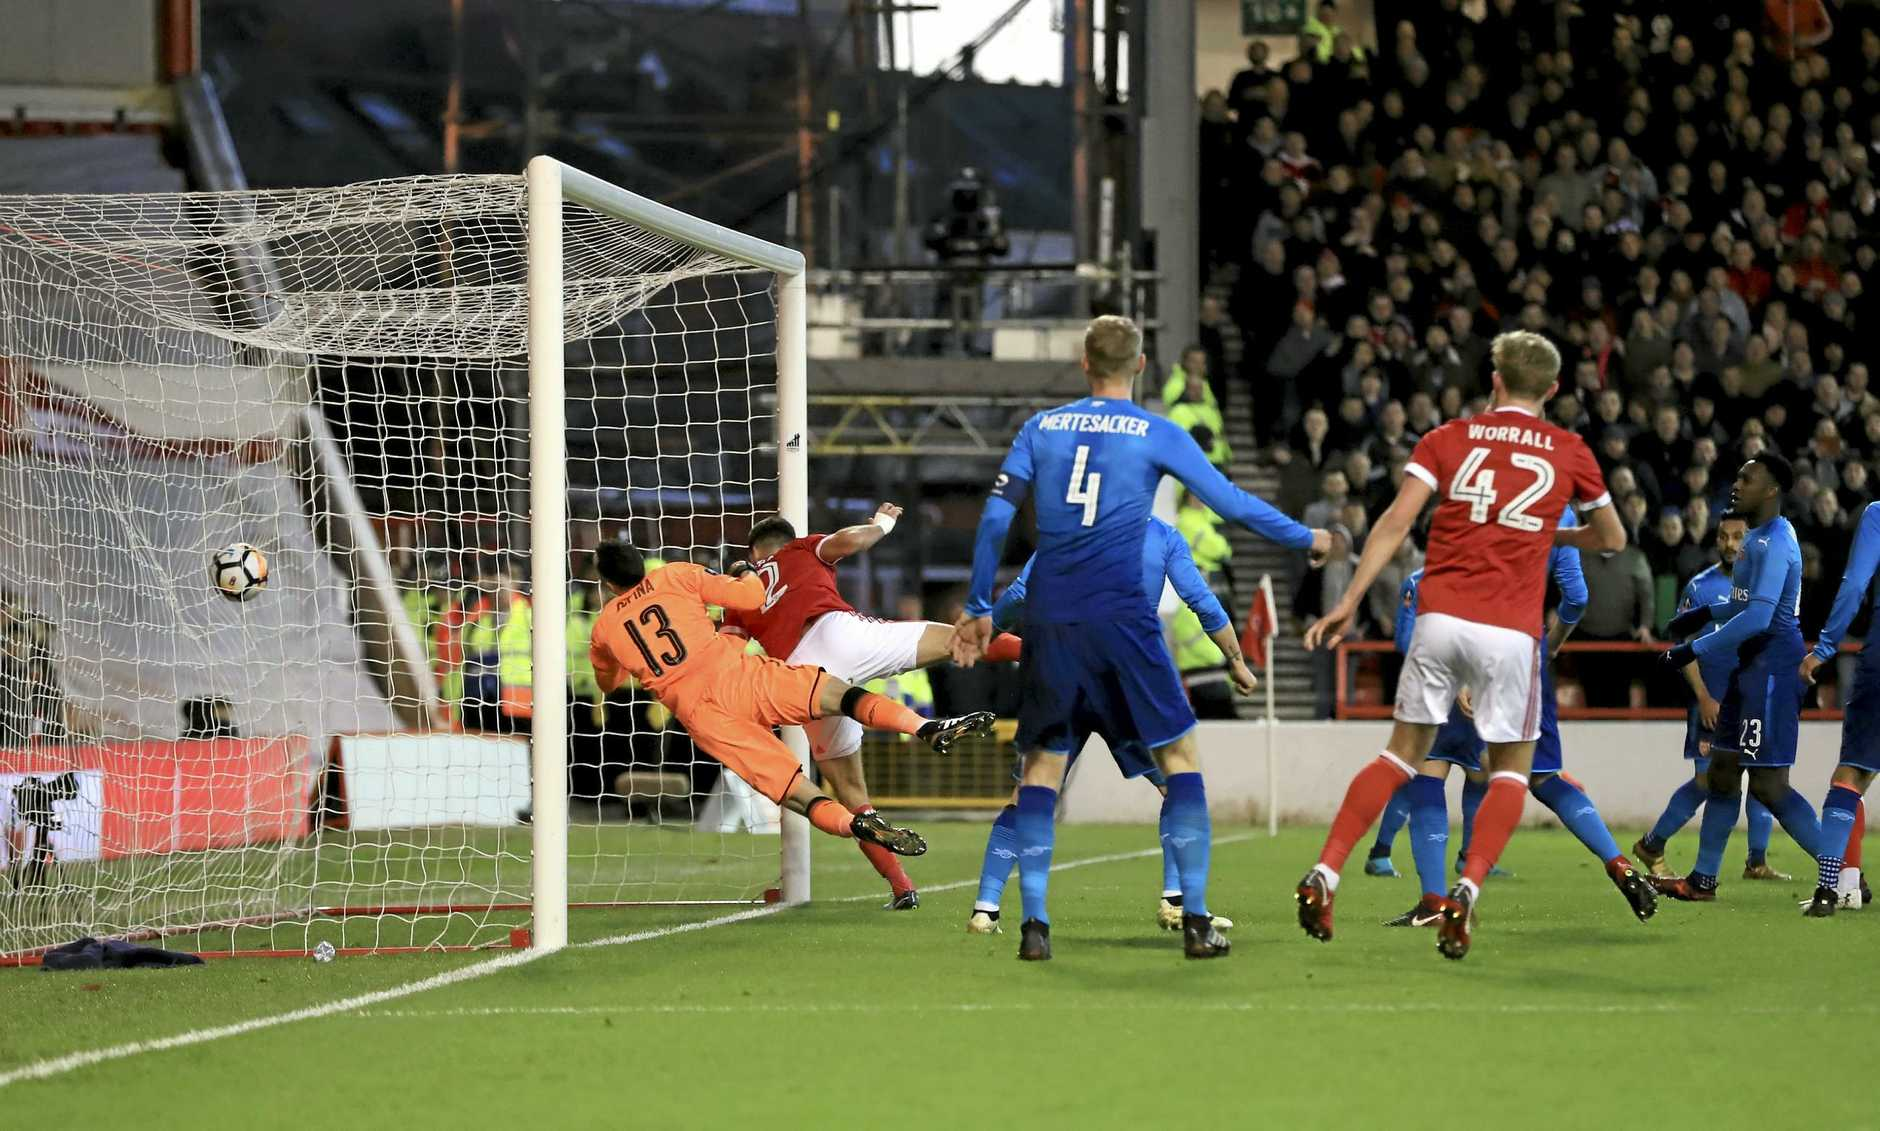 Eric Lichaj scores the opening goal for Nottingham Forest against Arsenal.